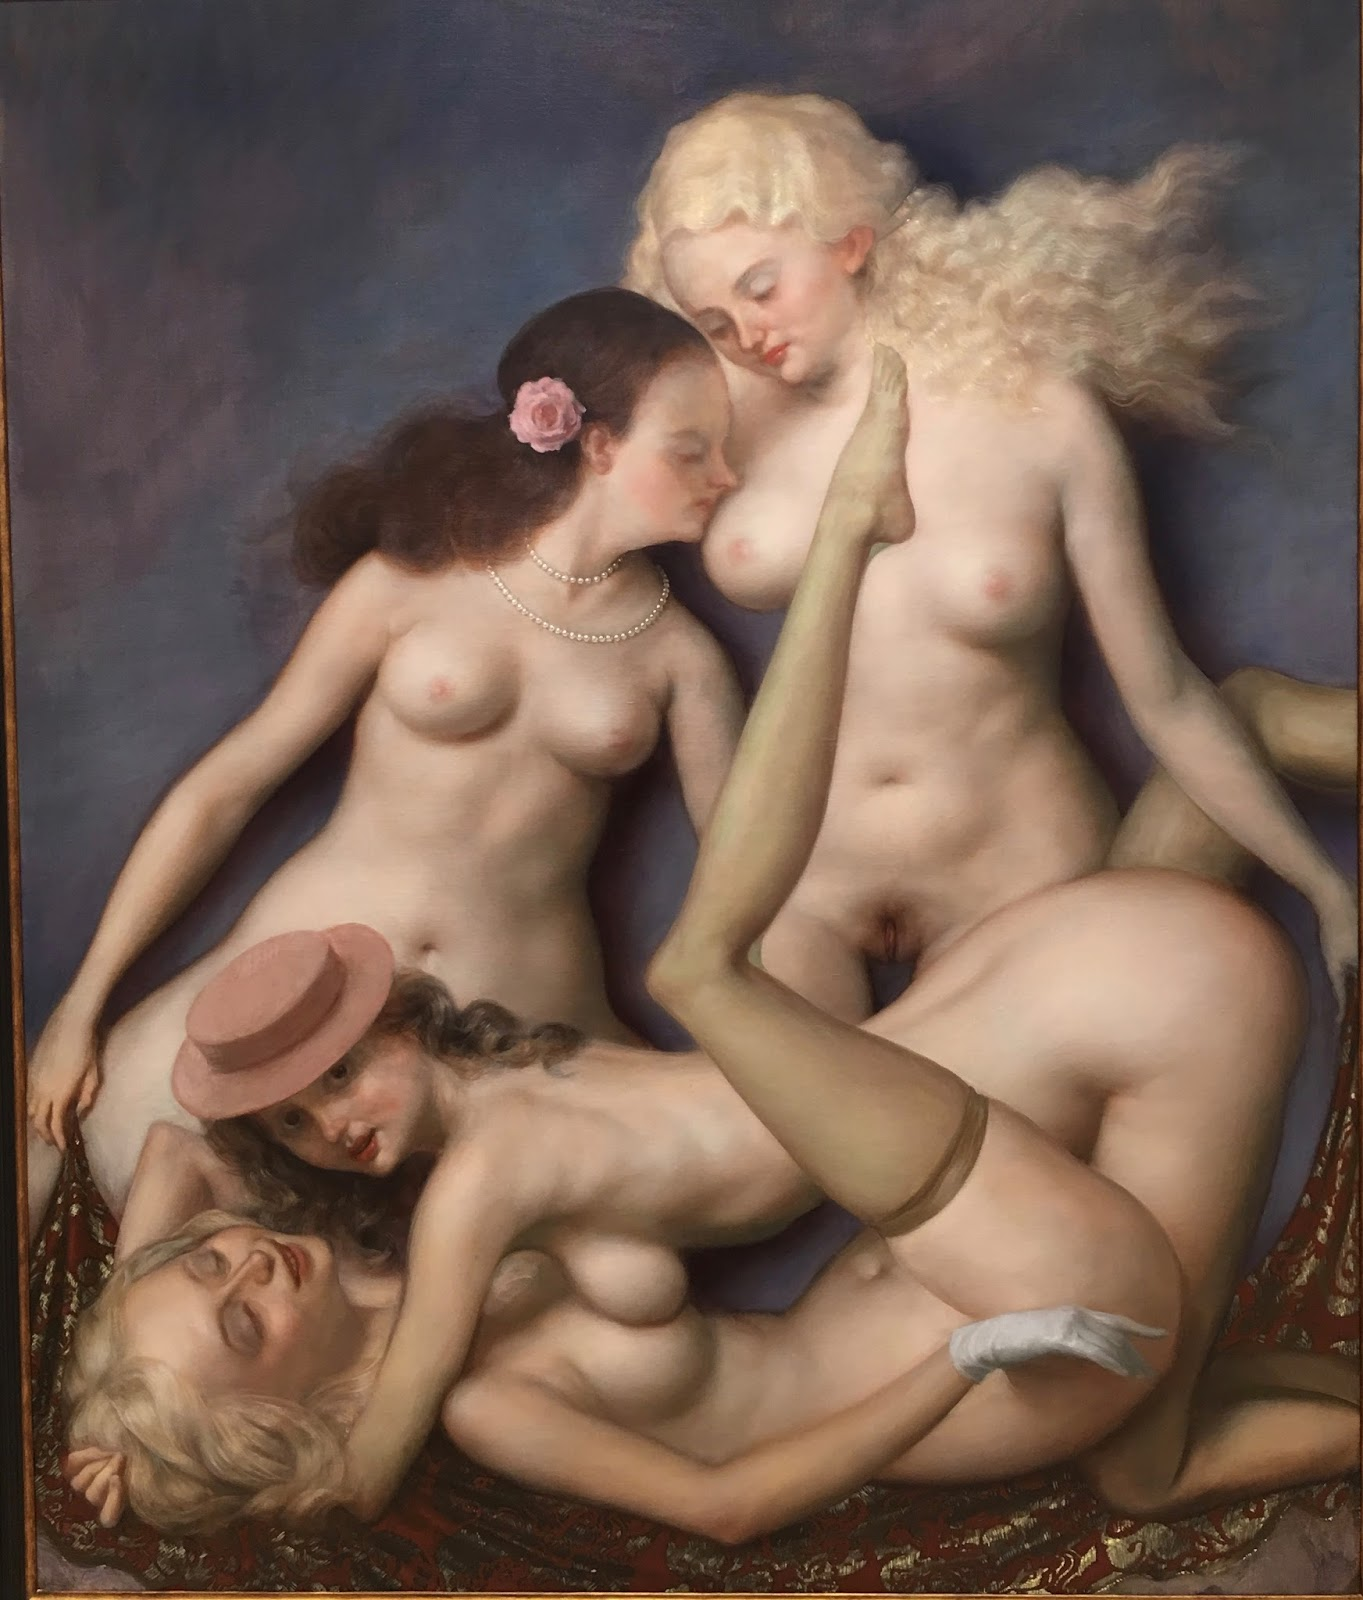 Girls nude porn paintings fisting